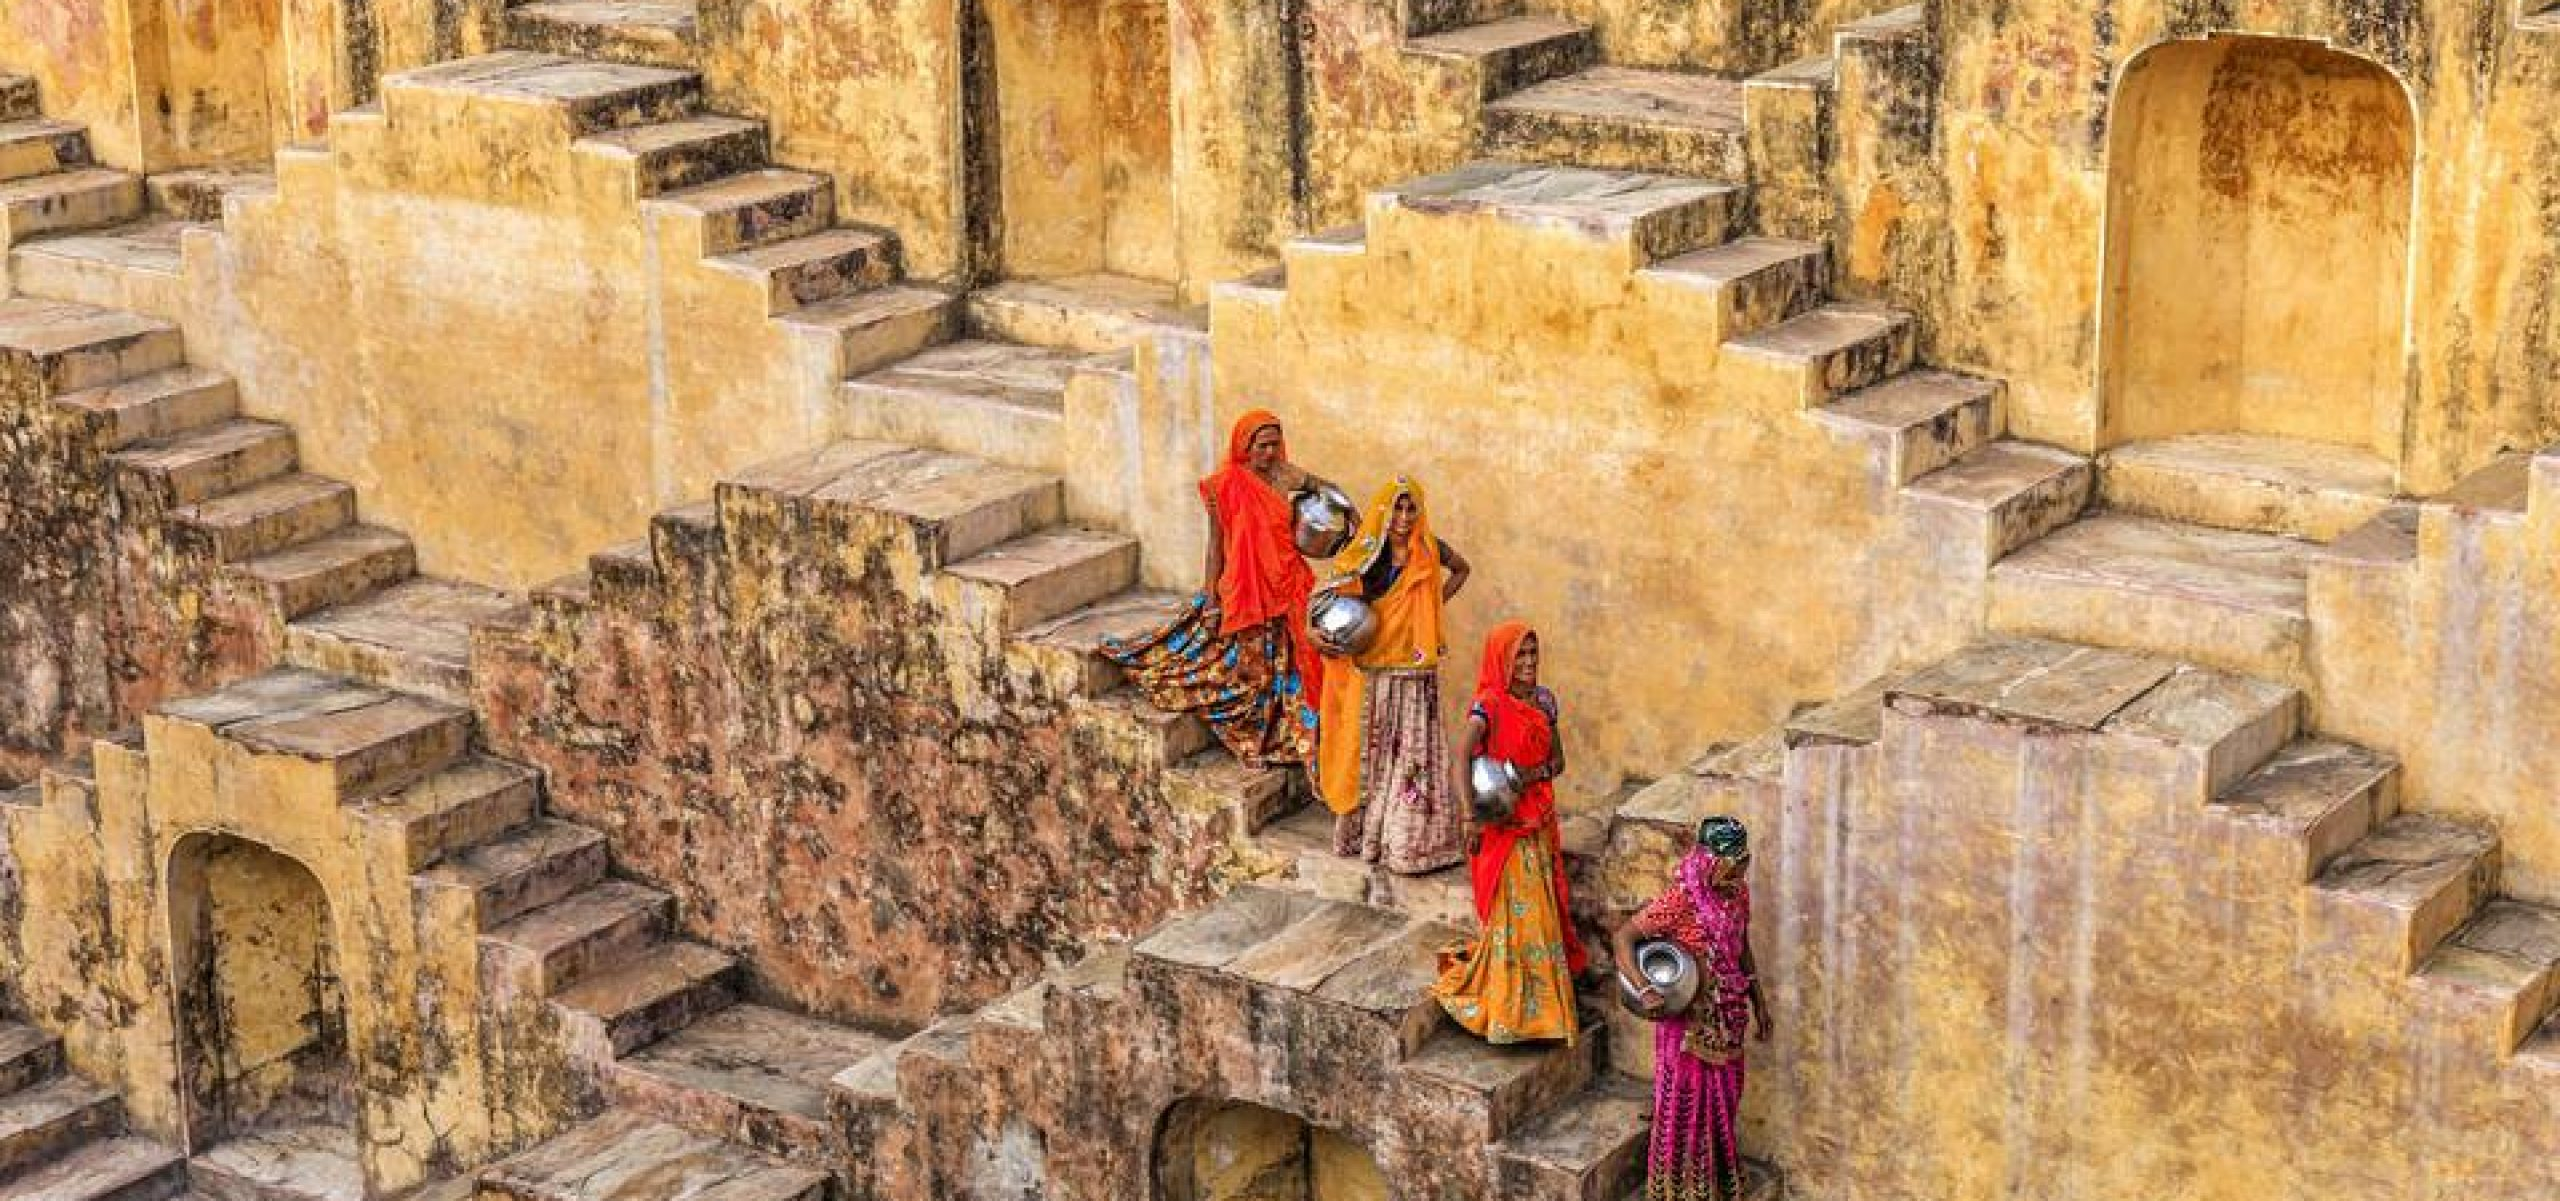 India_Cover Image_Jaipur_Chand Baori